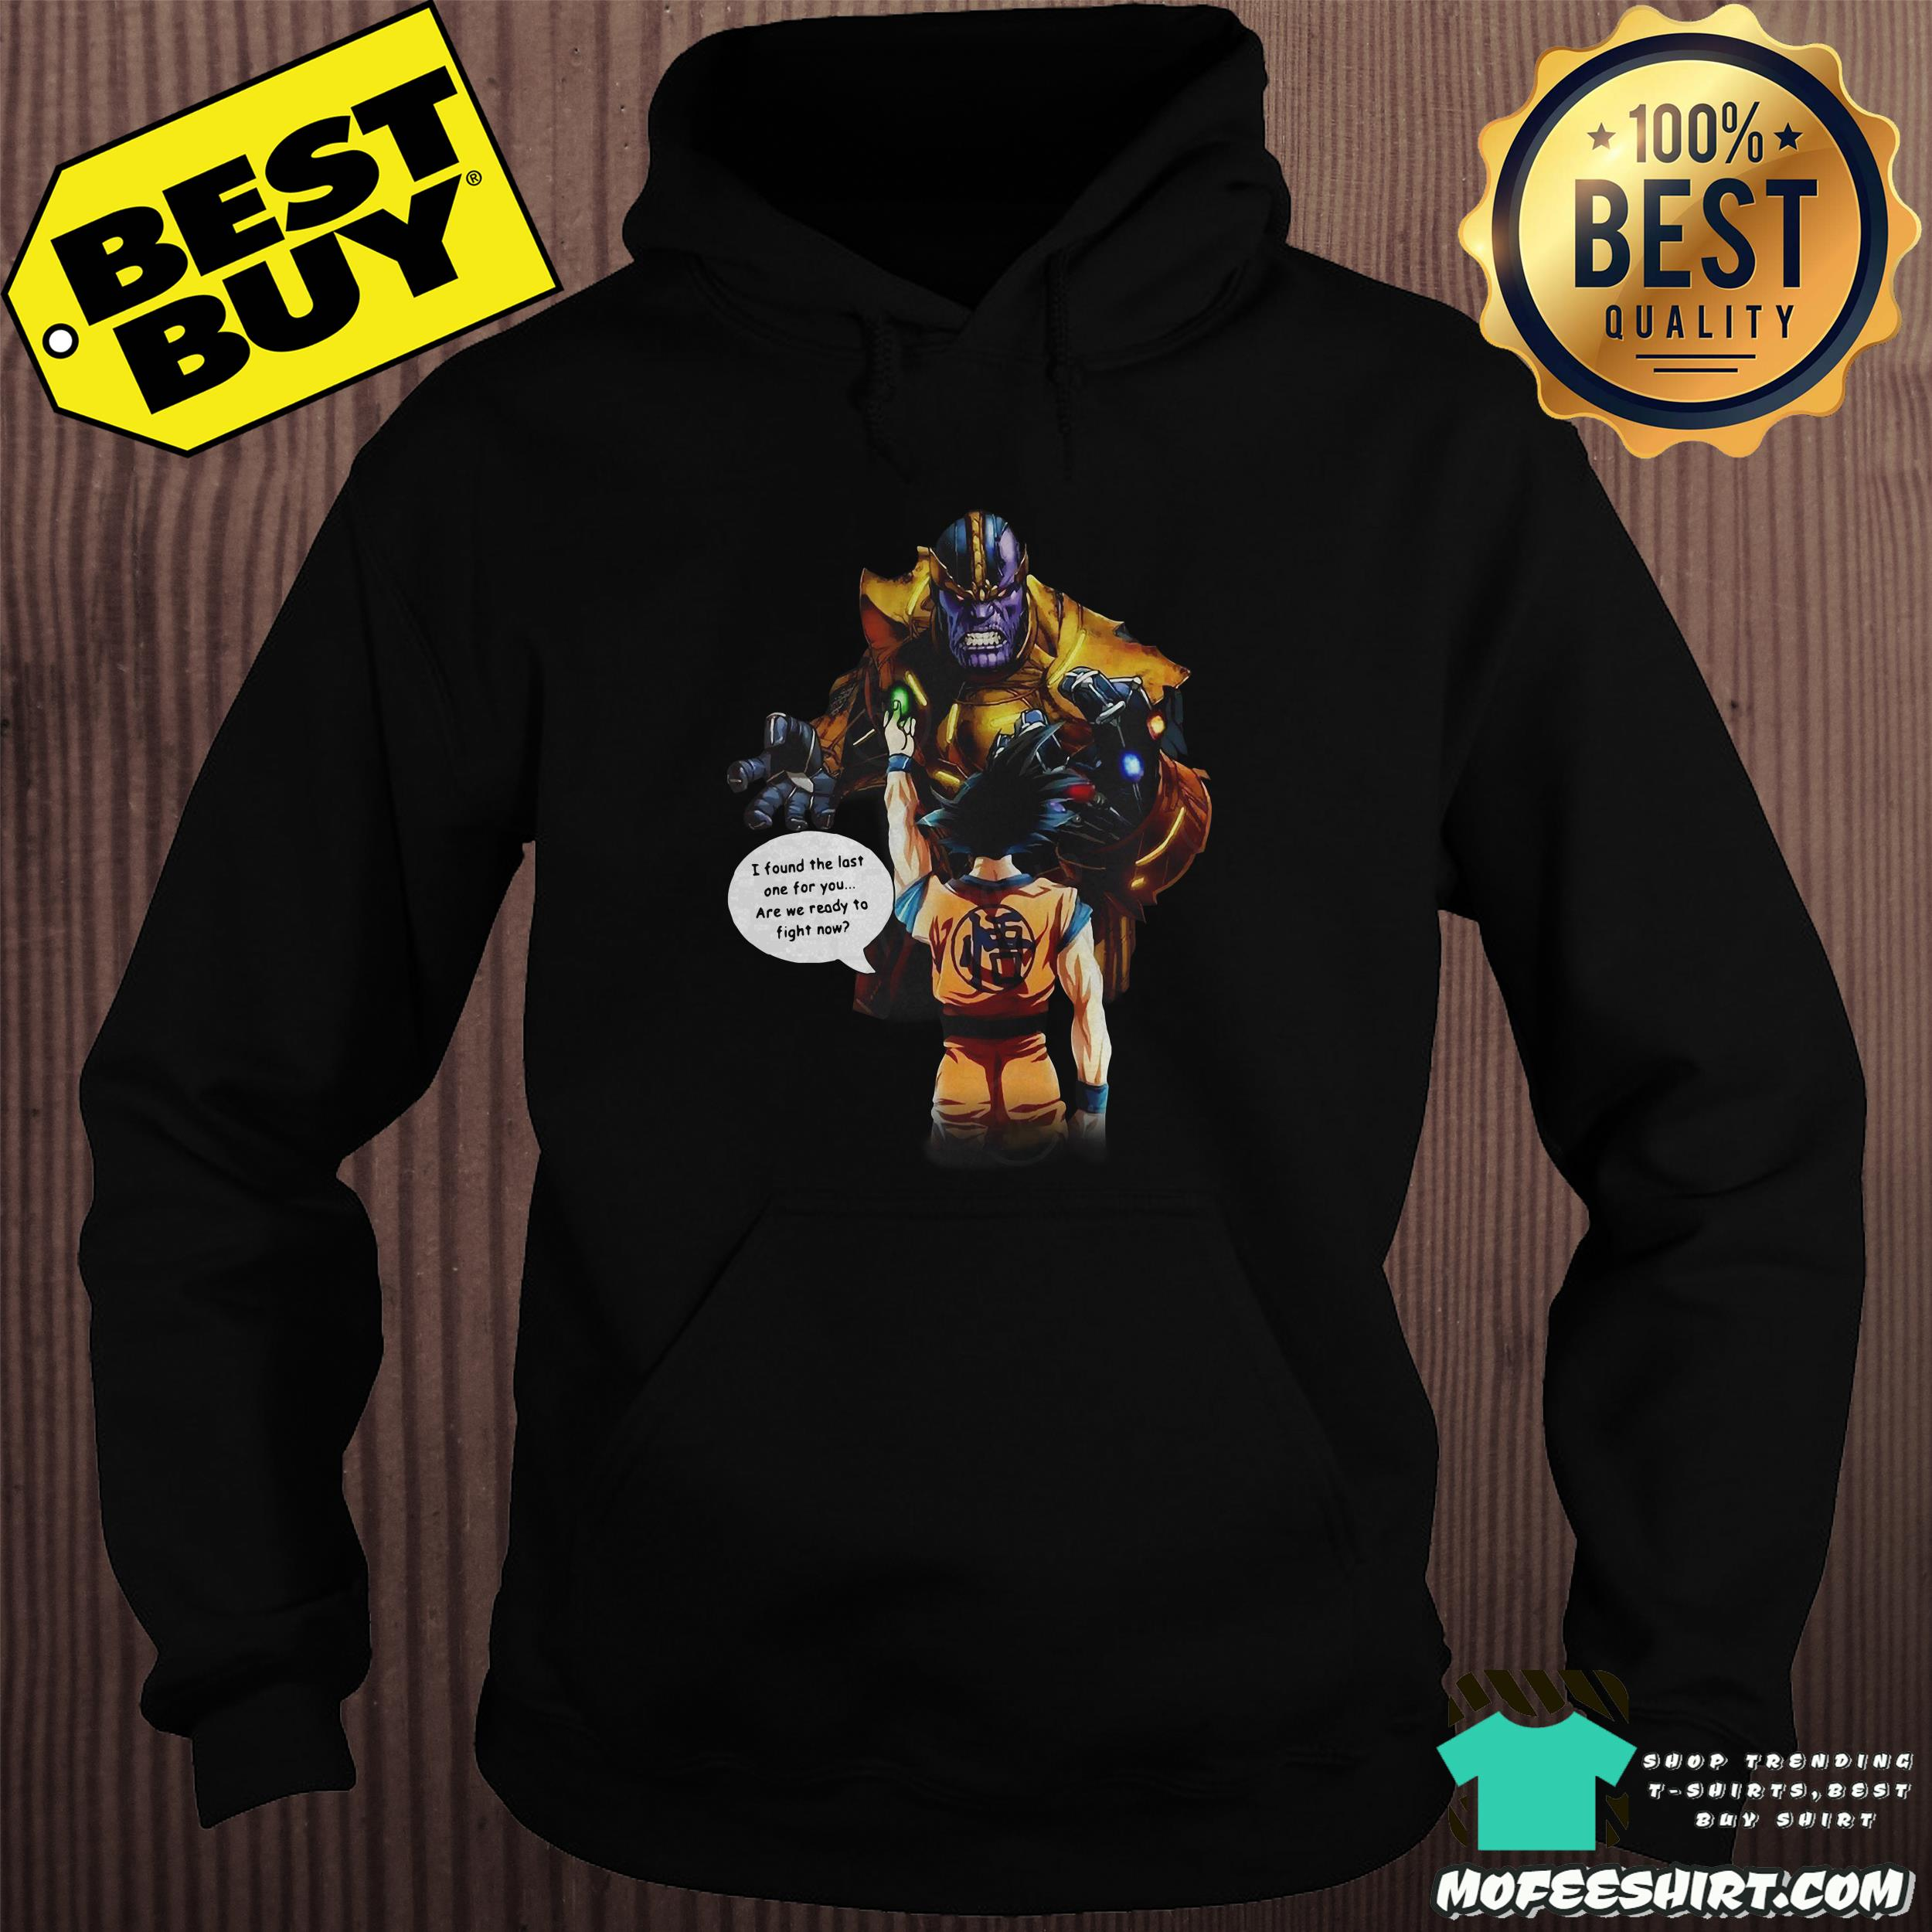 songoku and thanos i found the last one for you hoodie - Songoku and Thanos I found the last one for you shirt